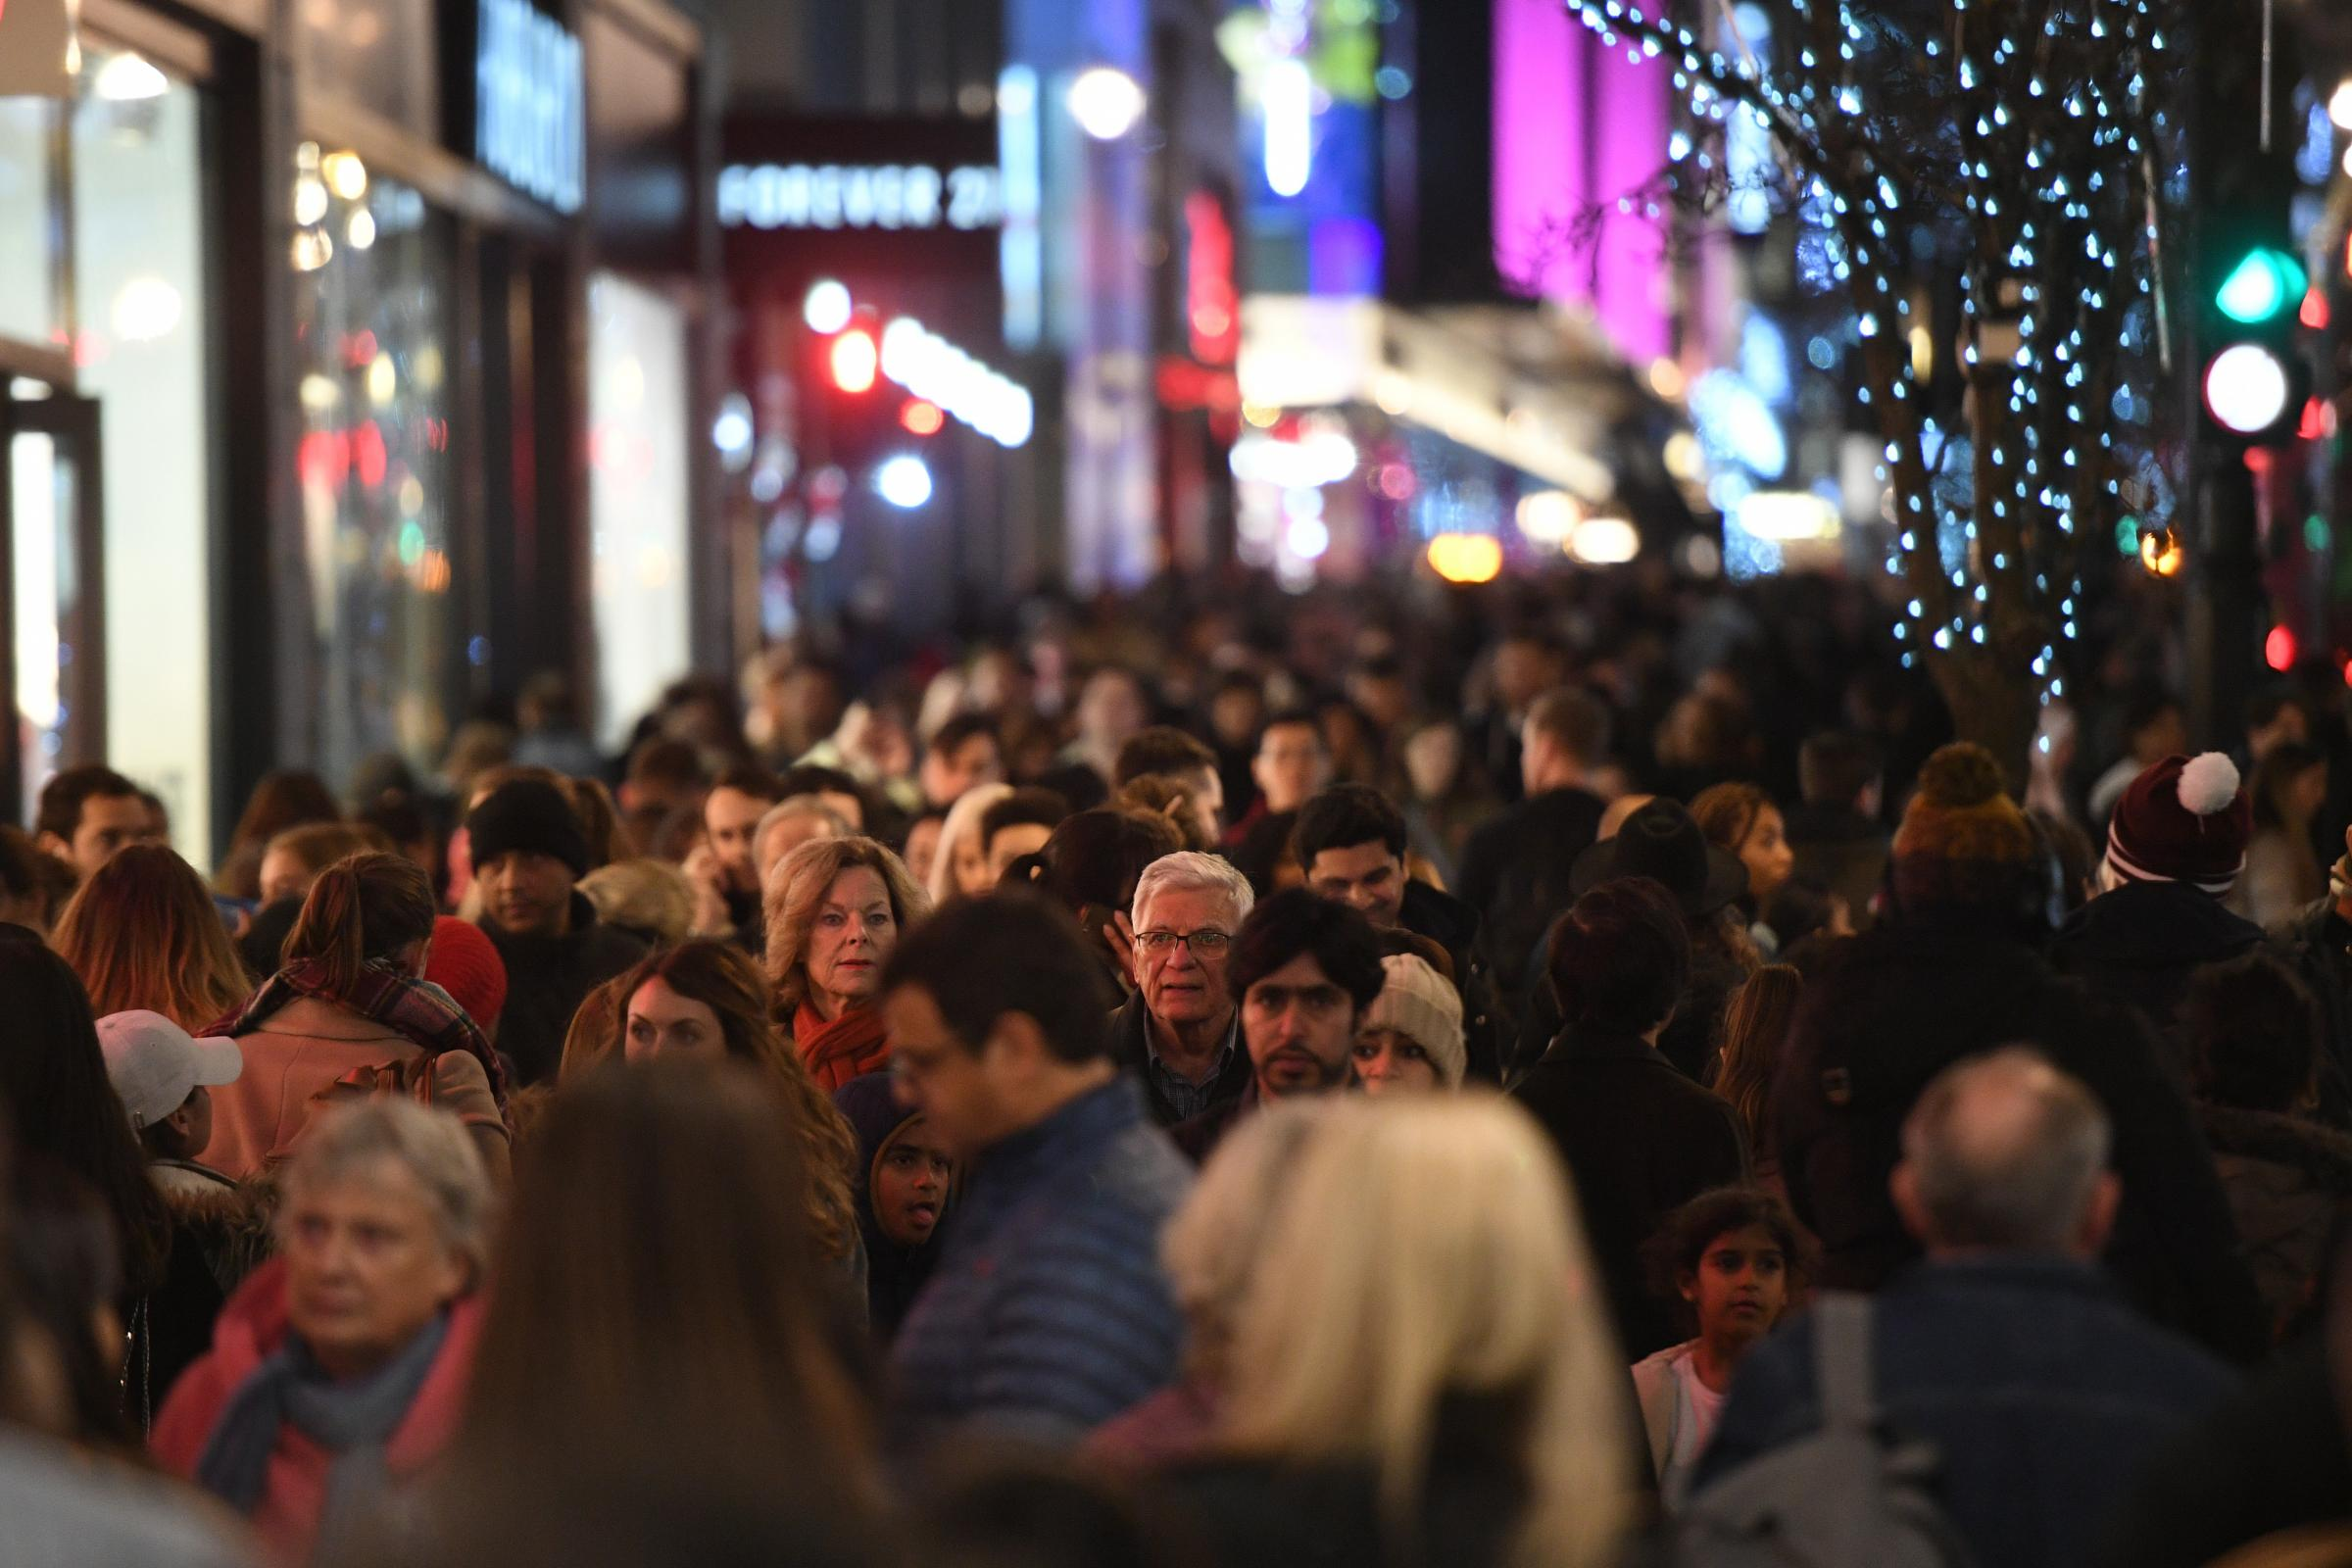 Anti-terror chiefs call on Christmas shoppers to be 'extra eyes and ears'